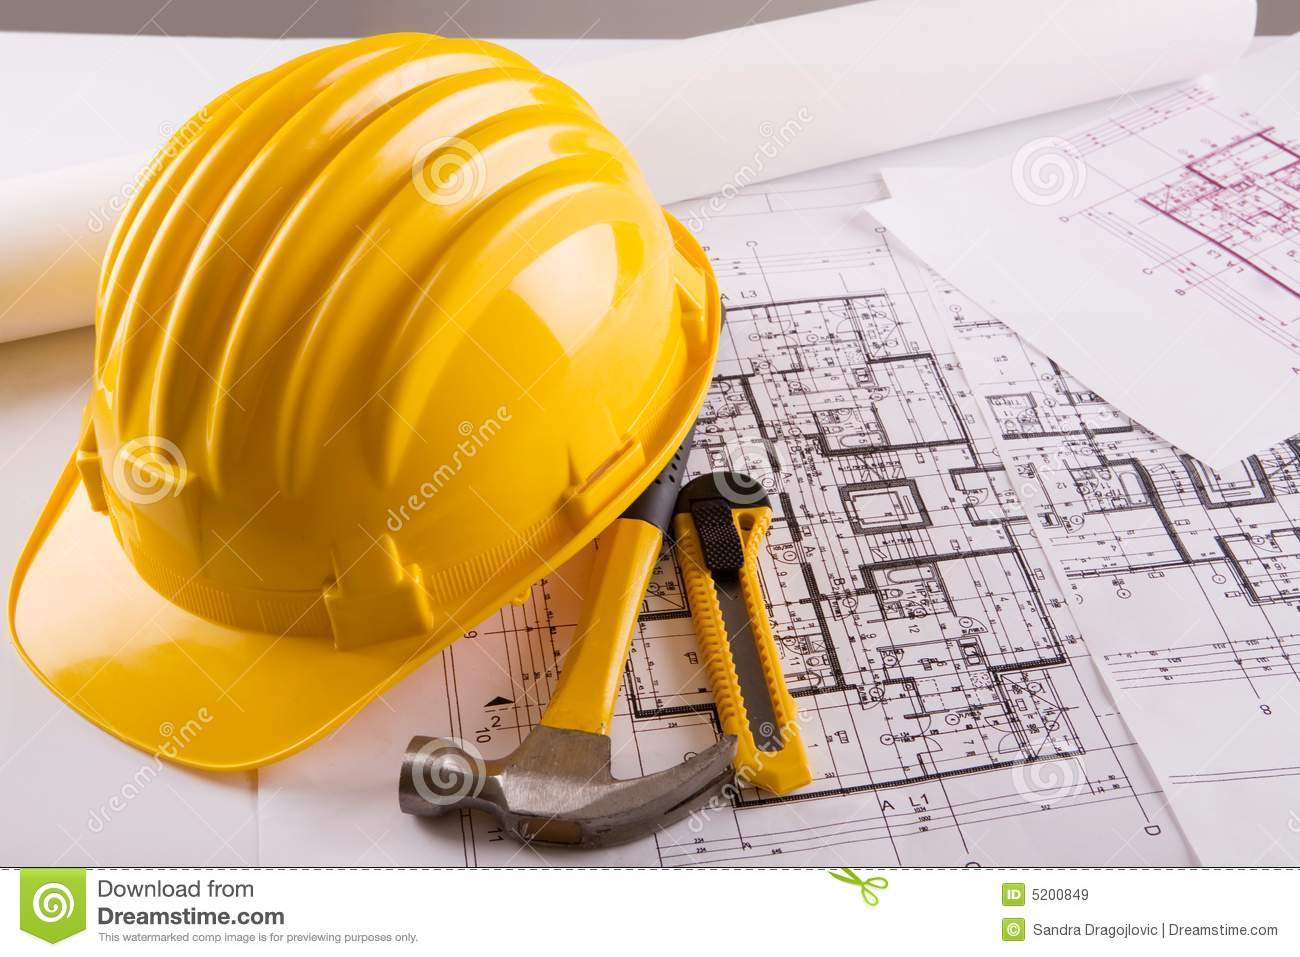 Construction Blueprint Royalty Free Stock Images - Image: 5200849: www.dreamstime.com/royalty-free-stock-images-construction-blueprint...